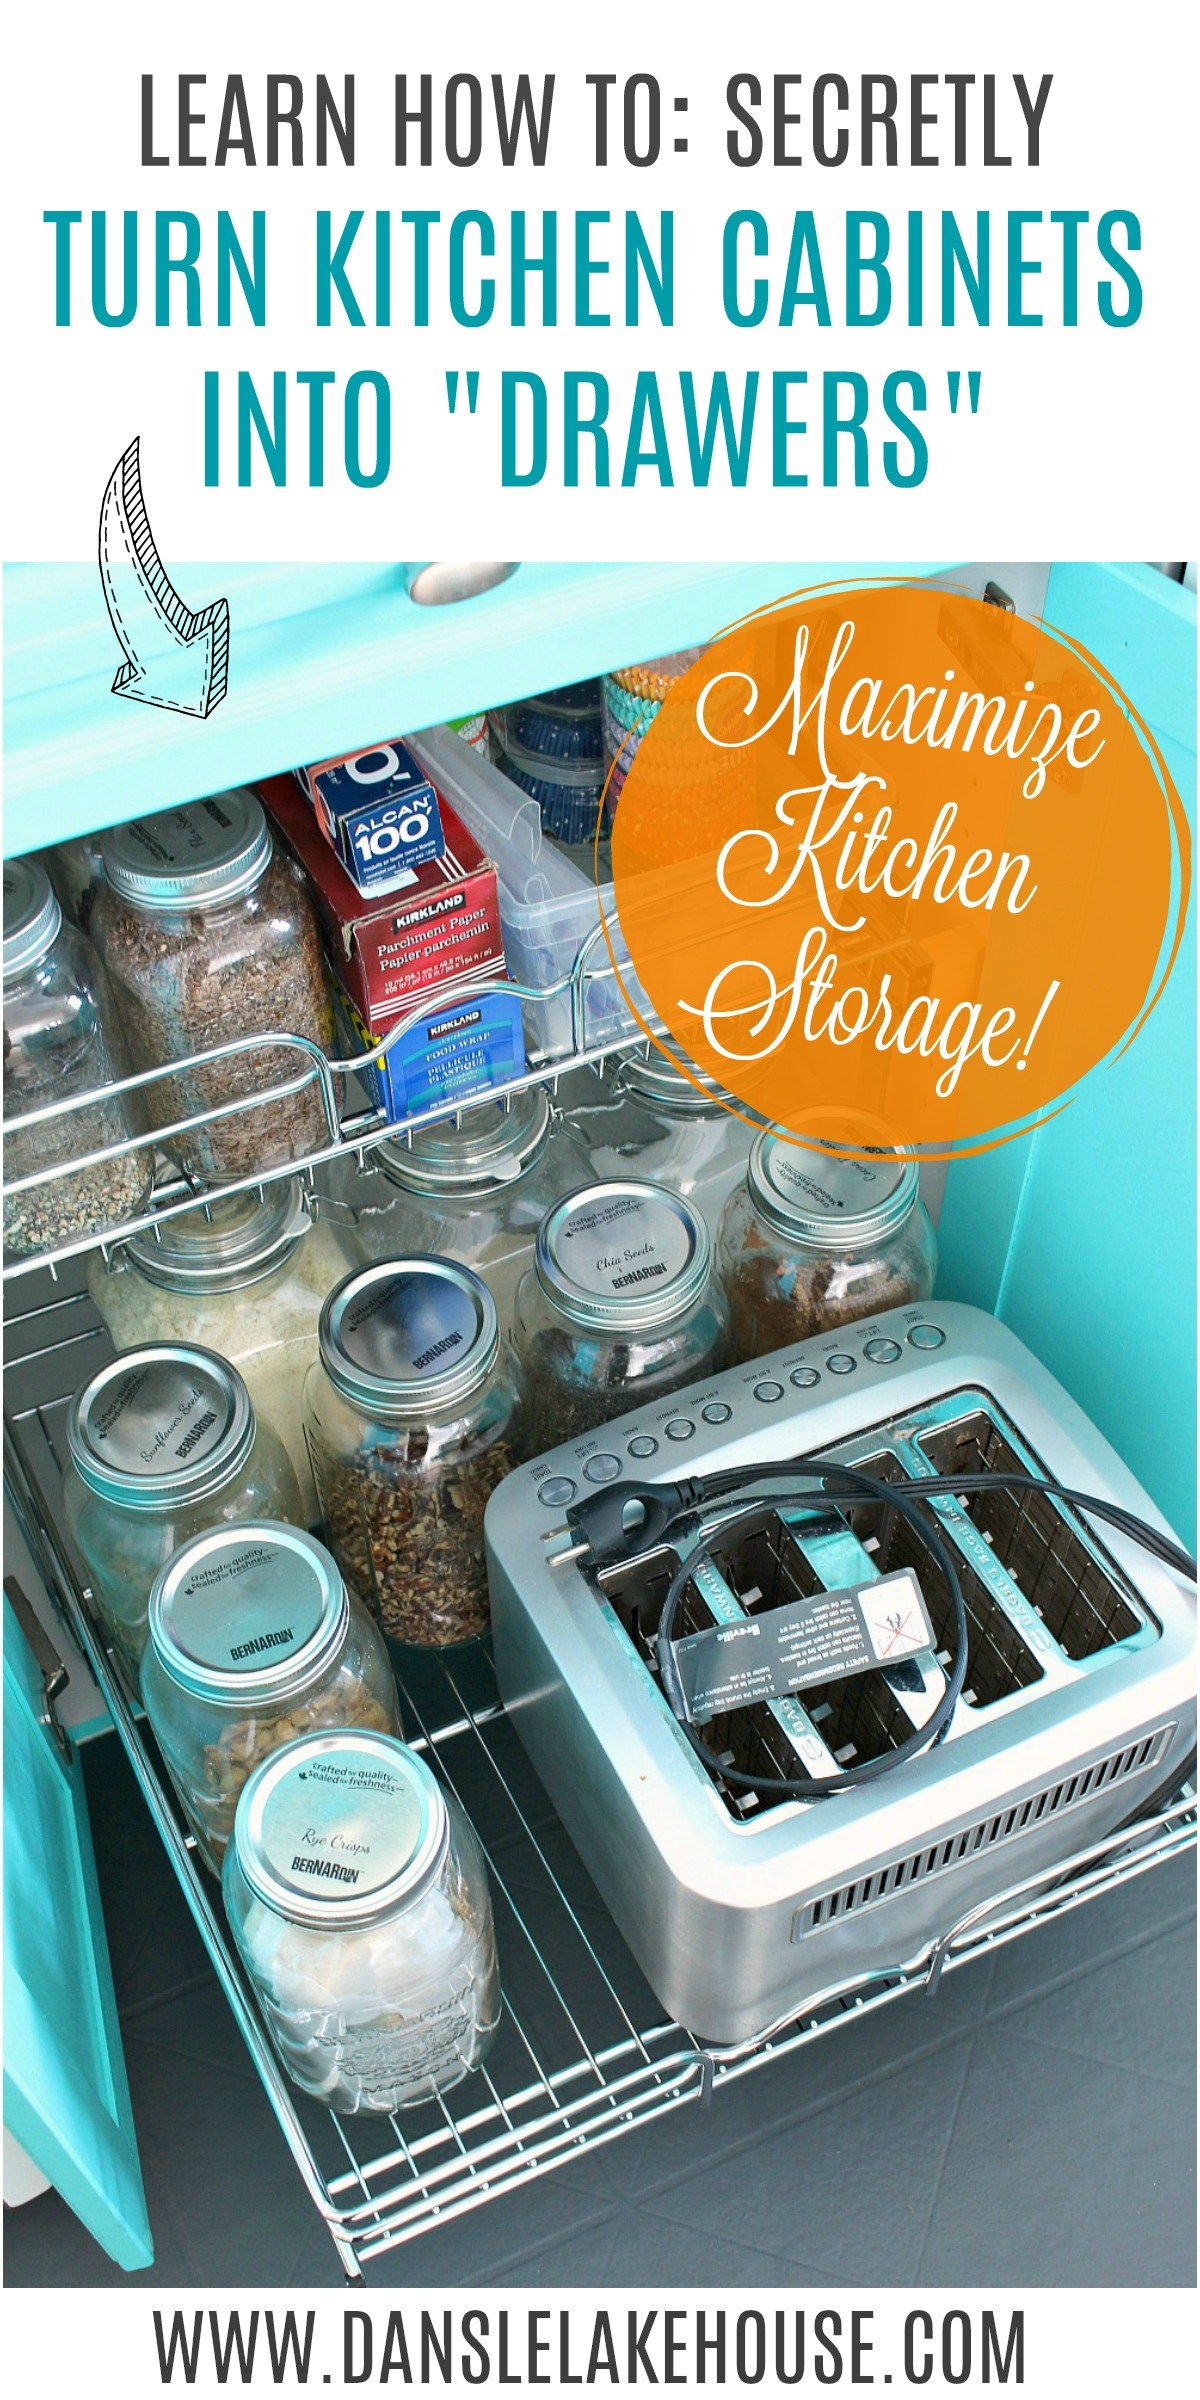 """MAXIMIZE SMALL KITCHEN STORAGE: learn how to turn kitchen cabinets into """"drawers"""" and other great tips and tricks for small kitchen storage. #organizing #smallspaces #smallkitchen #kitchenstorage #kitchenhacks"""